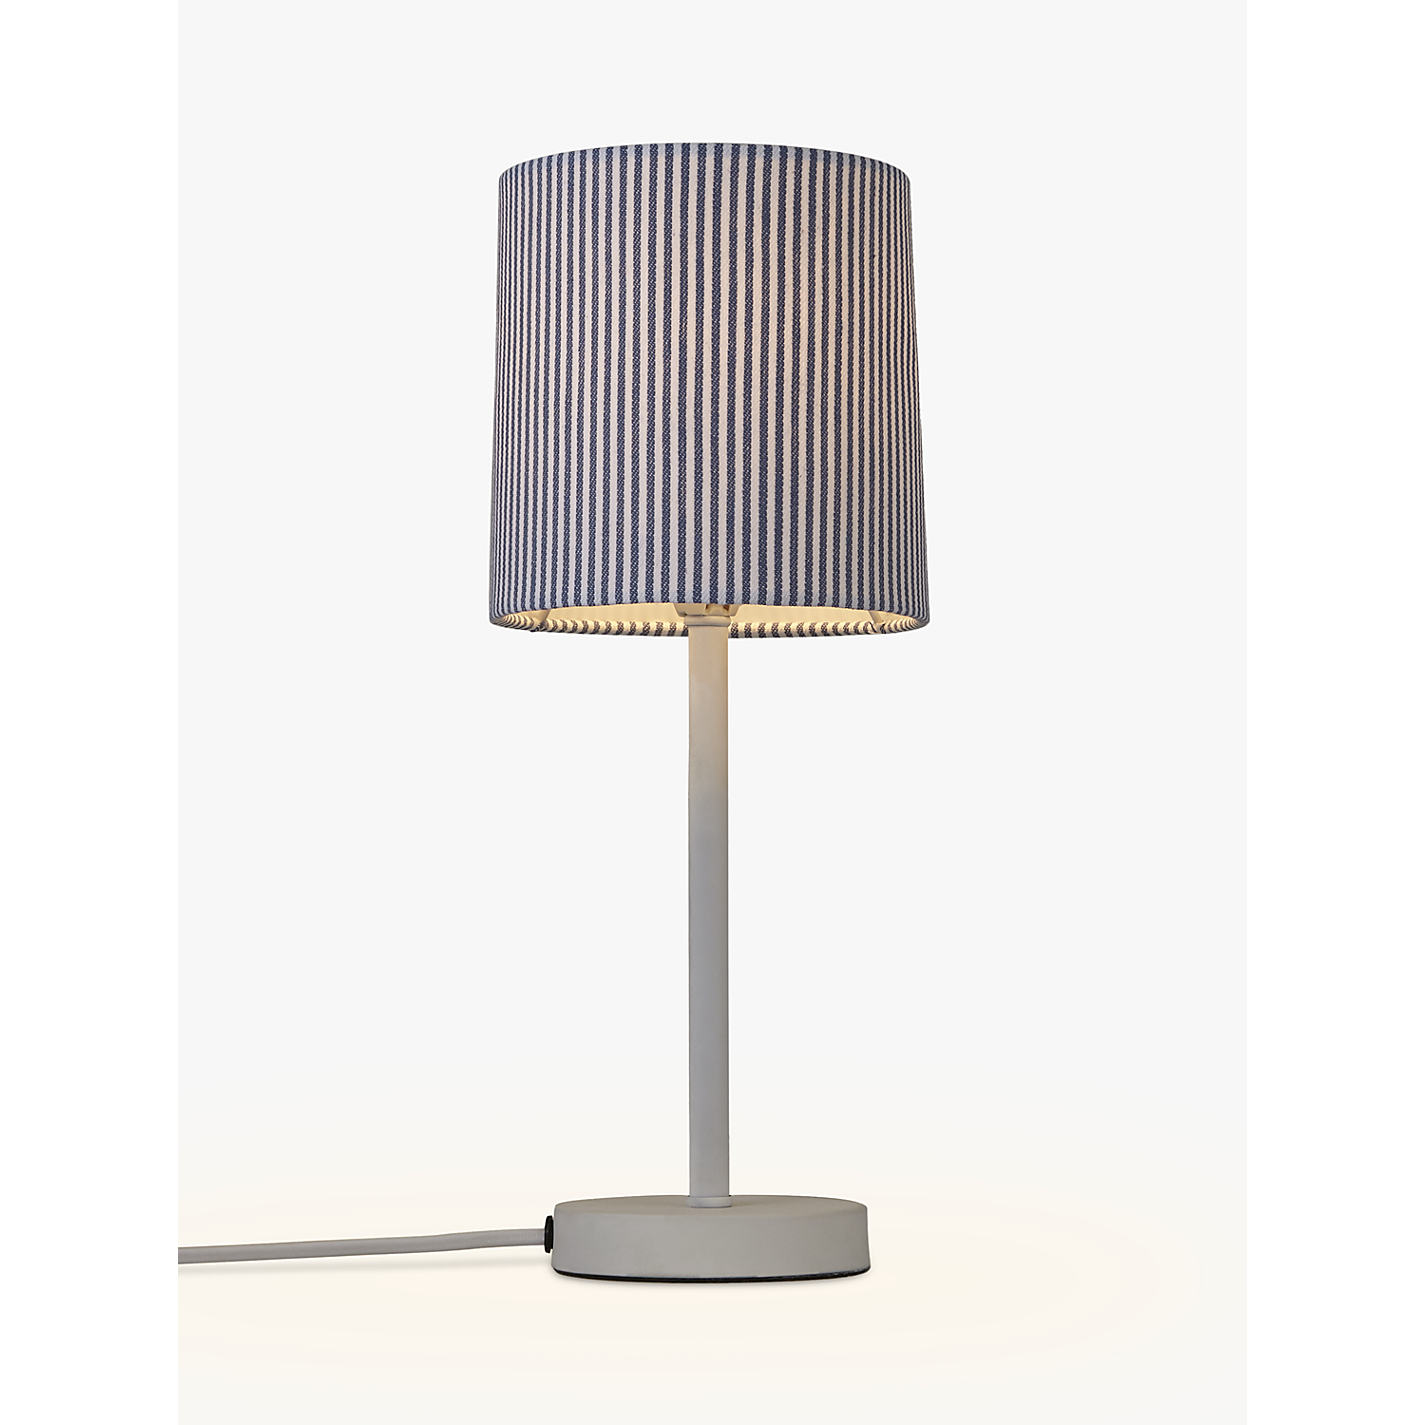 Buy john lewis eastbourne stick table lamp white john lewis buy john lewis eastbourne stick table lamp white online at johnlewis geotapseo Image collections